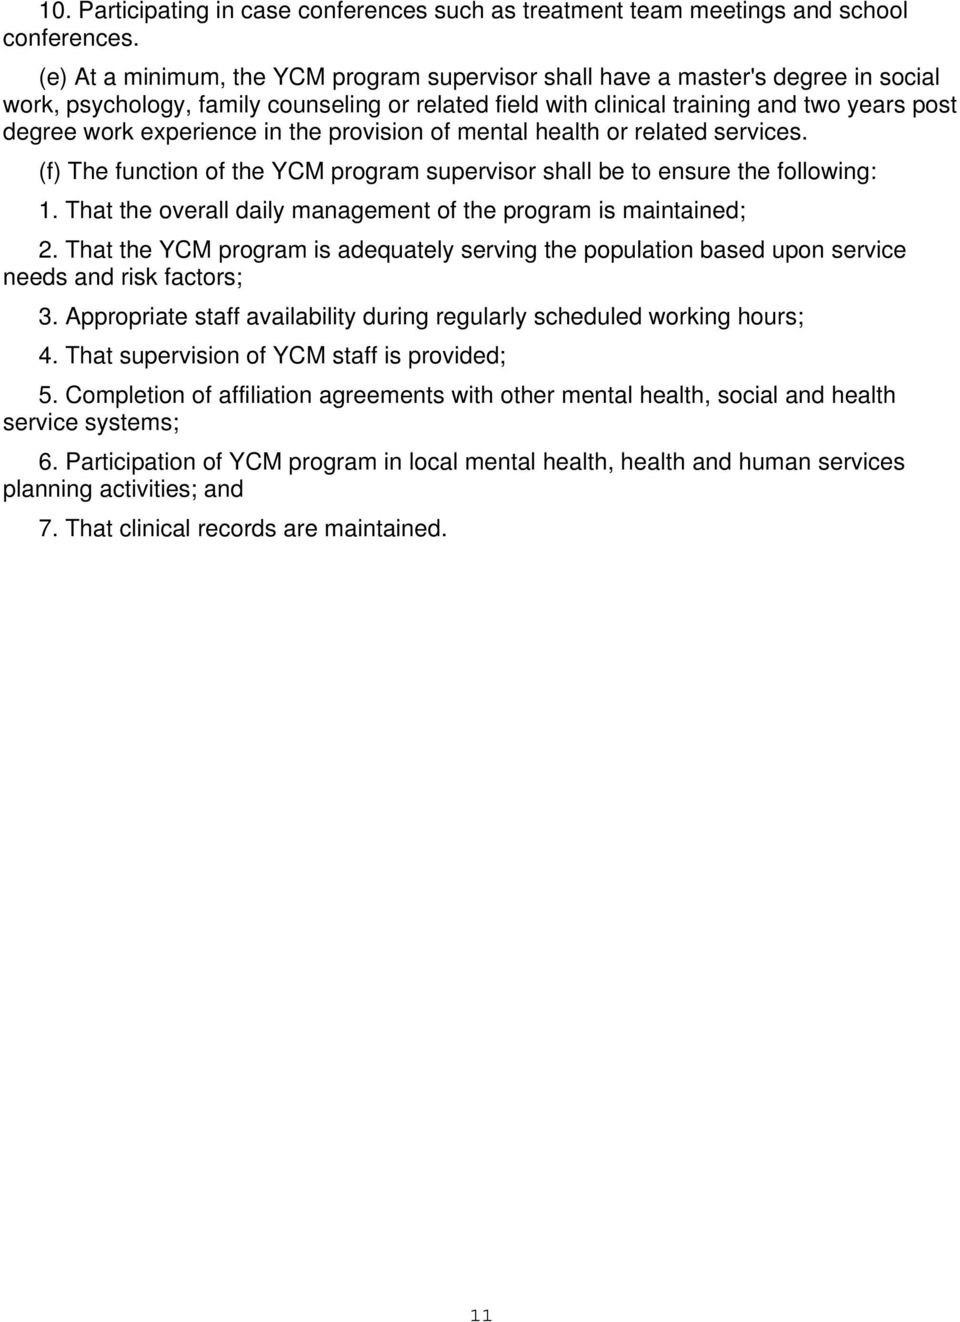 experience in the provision of mental health or related services. (f) The function of the YCM program supervisor shall be to ensure the following: 1.